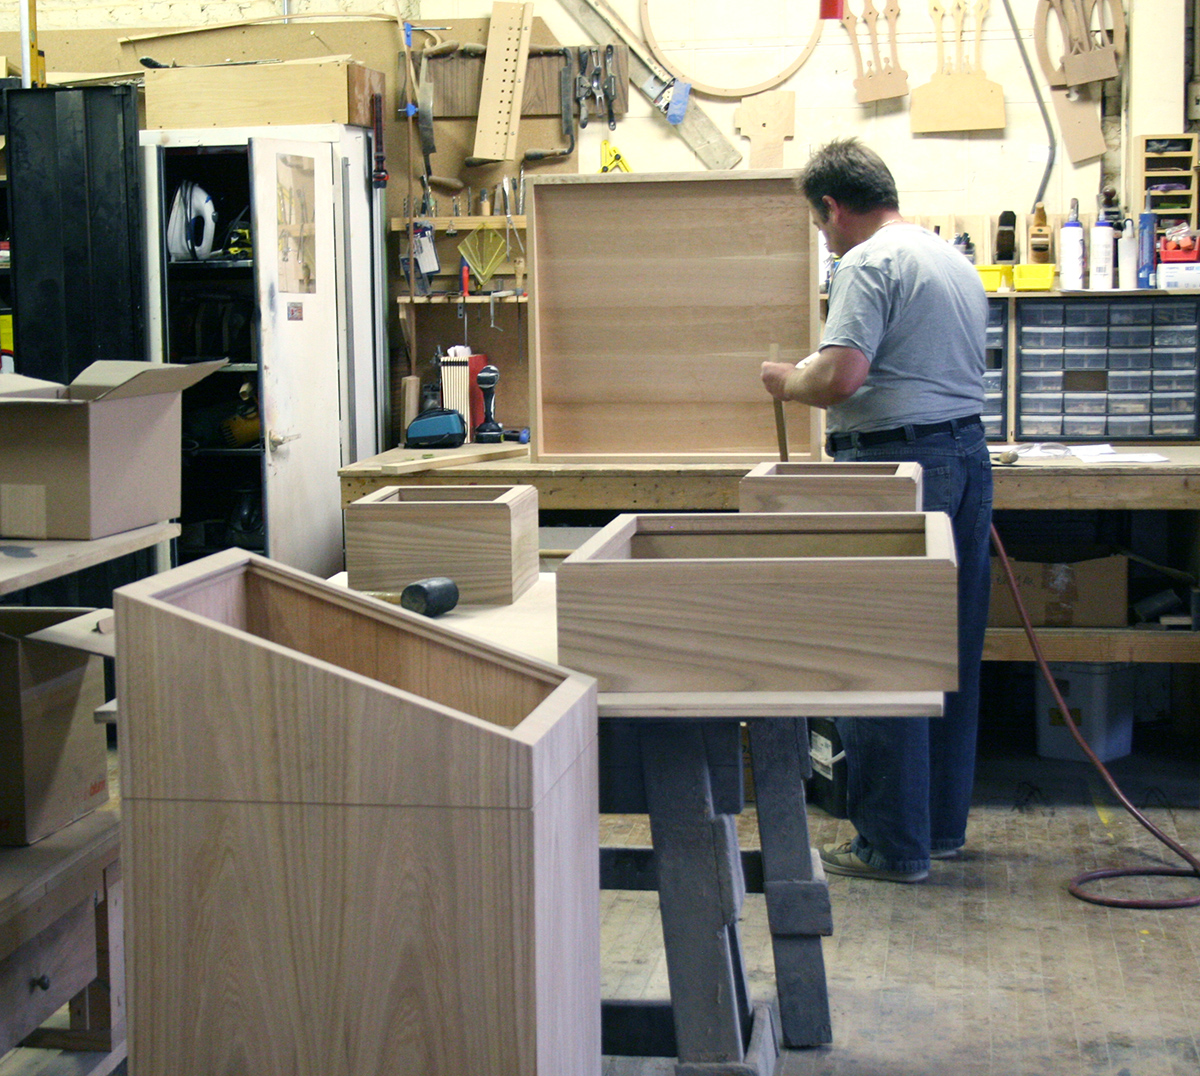 Mother Cabrini objects display cases during fabrication